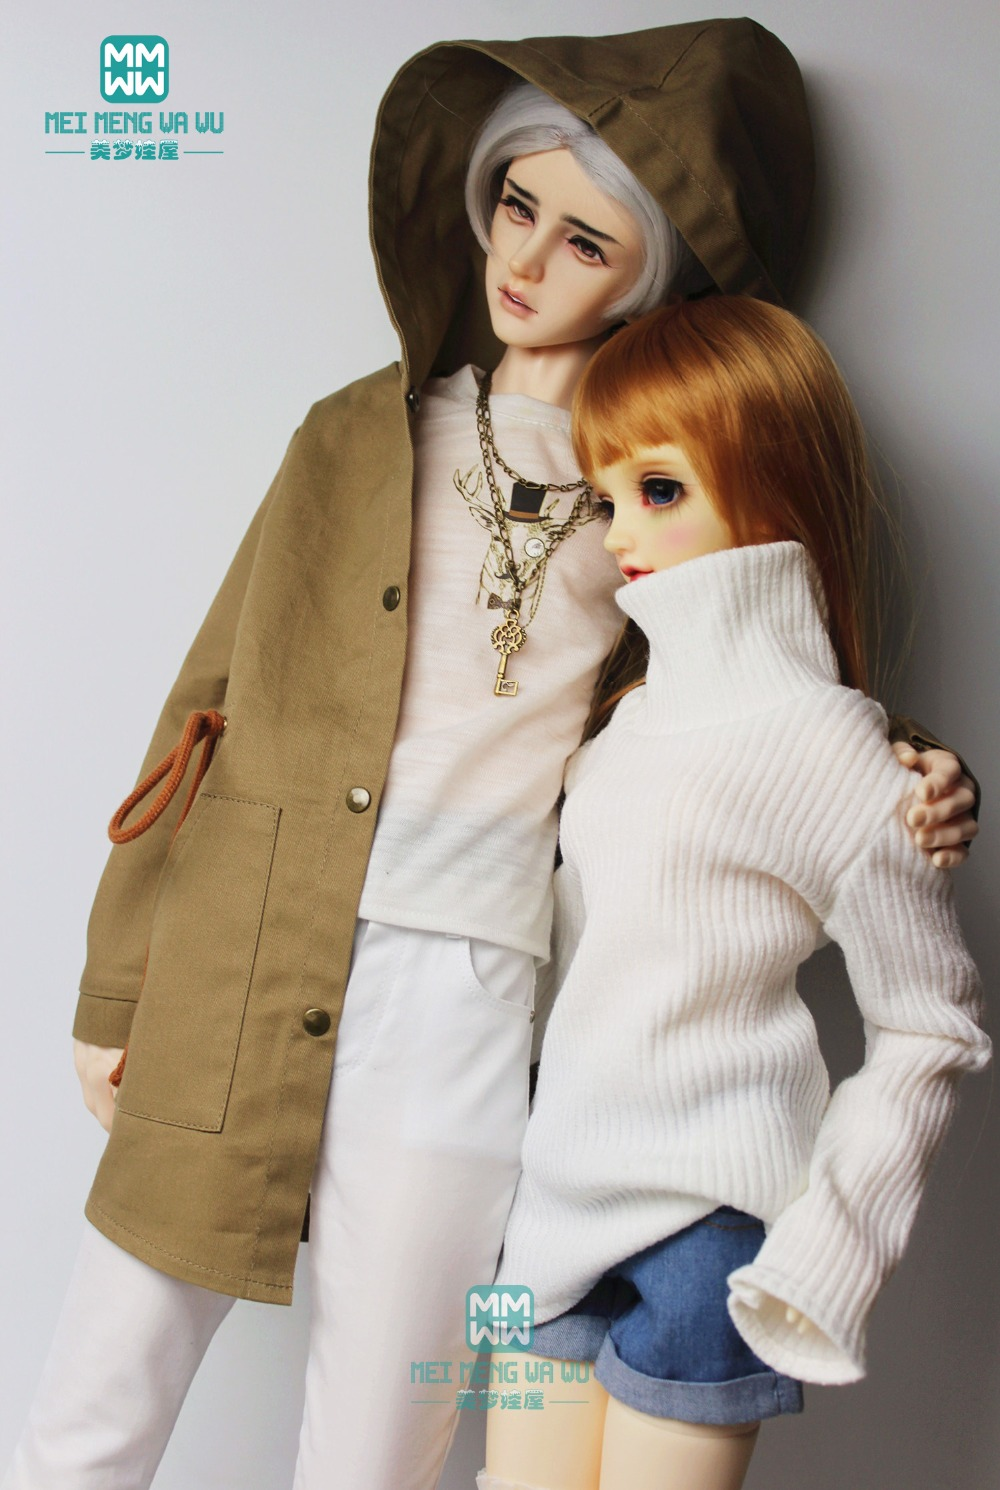 BJD Doll Clothes Loose Version Turtleneck Sweater Fits 1/3 BJD Doll Girl Boy And BJD Uncle Dimensional Compatible